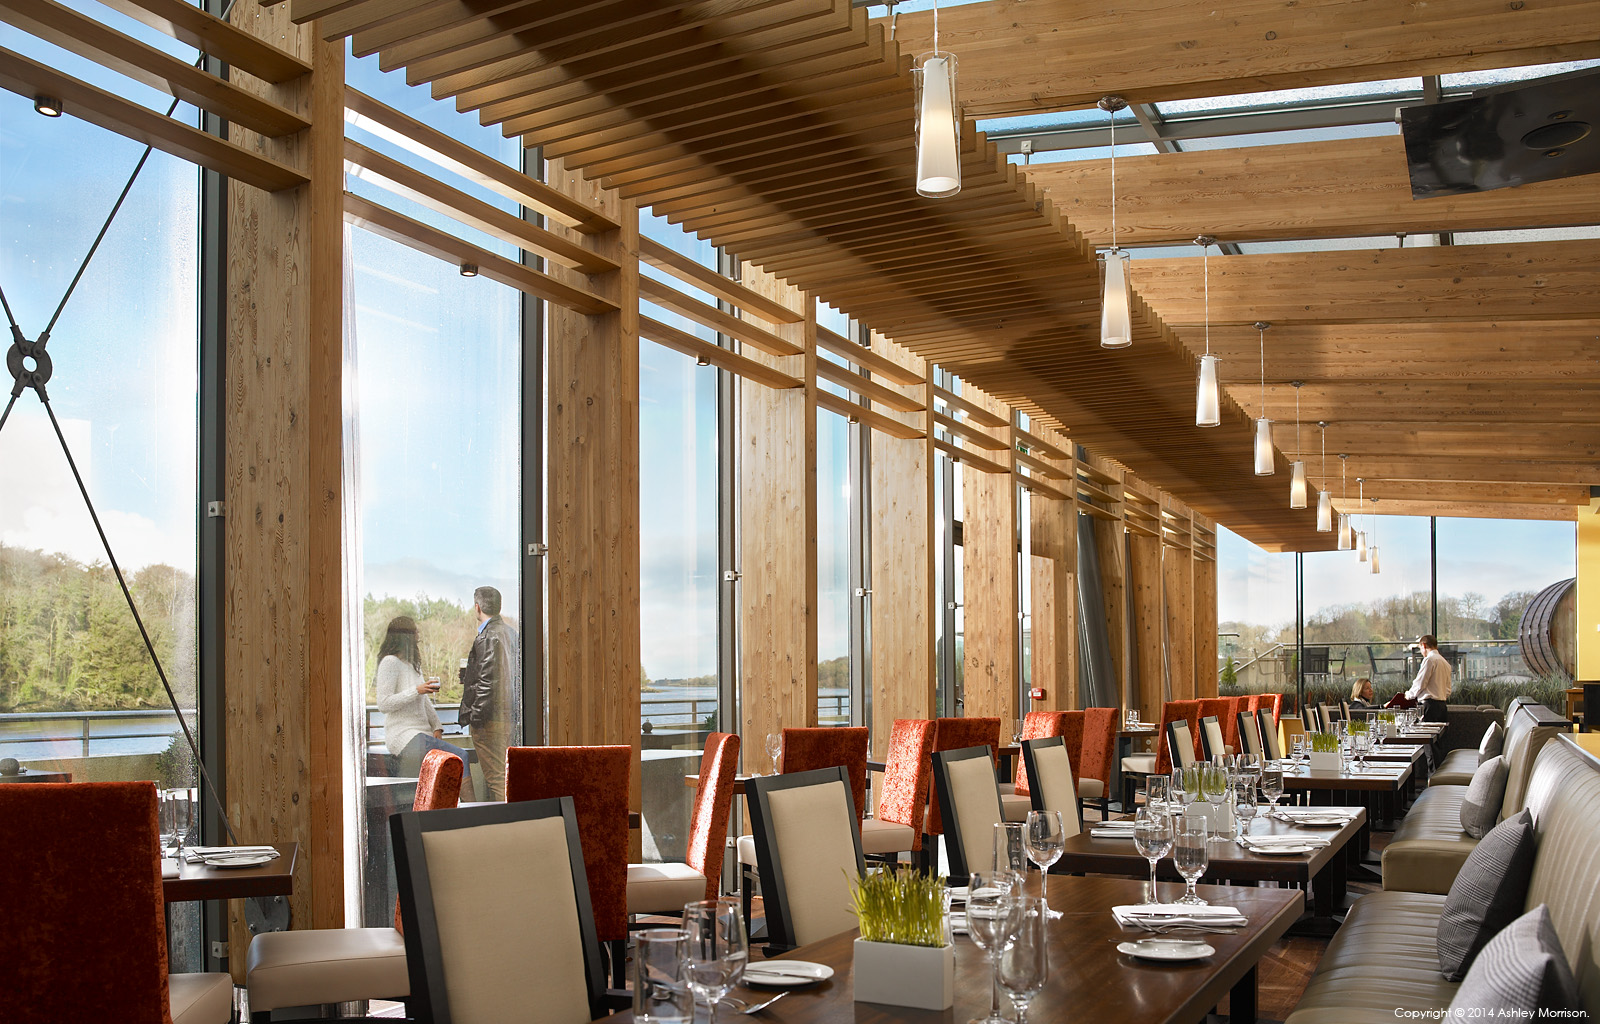 The riverside restaurant at the Ice House Hotel in Ballina by Ashley Morrison.